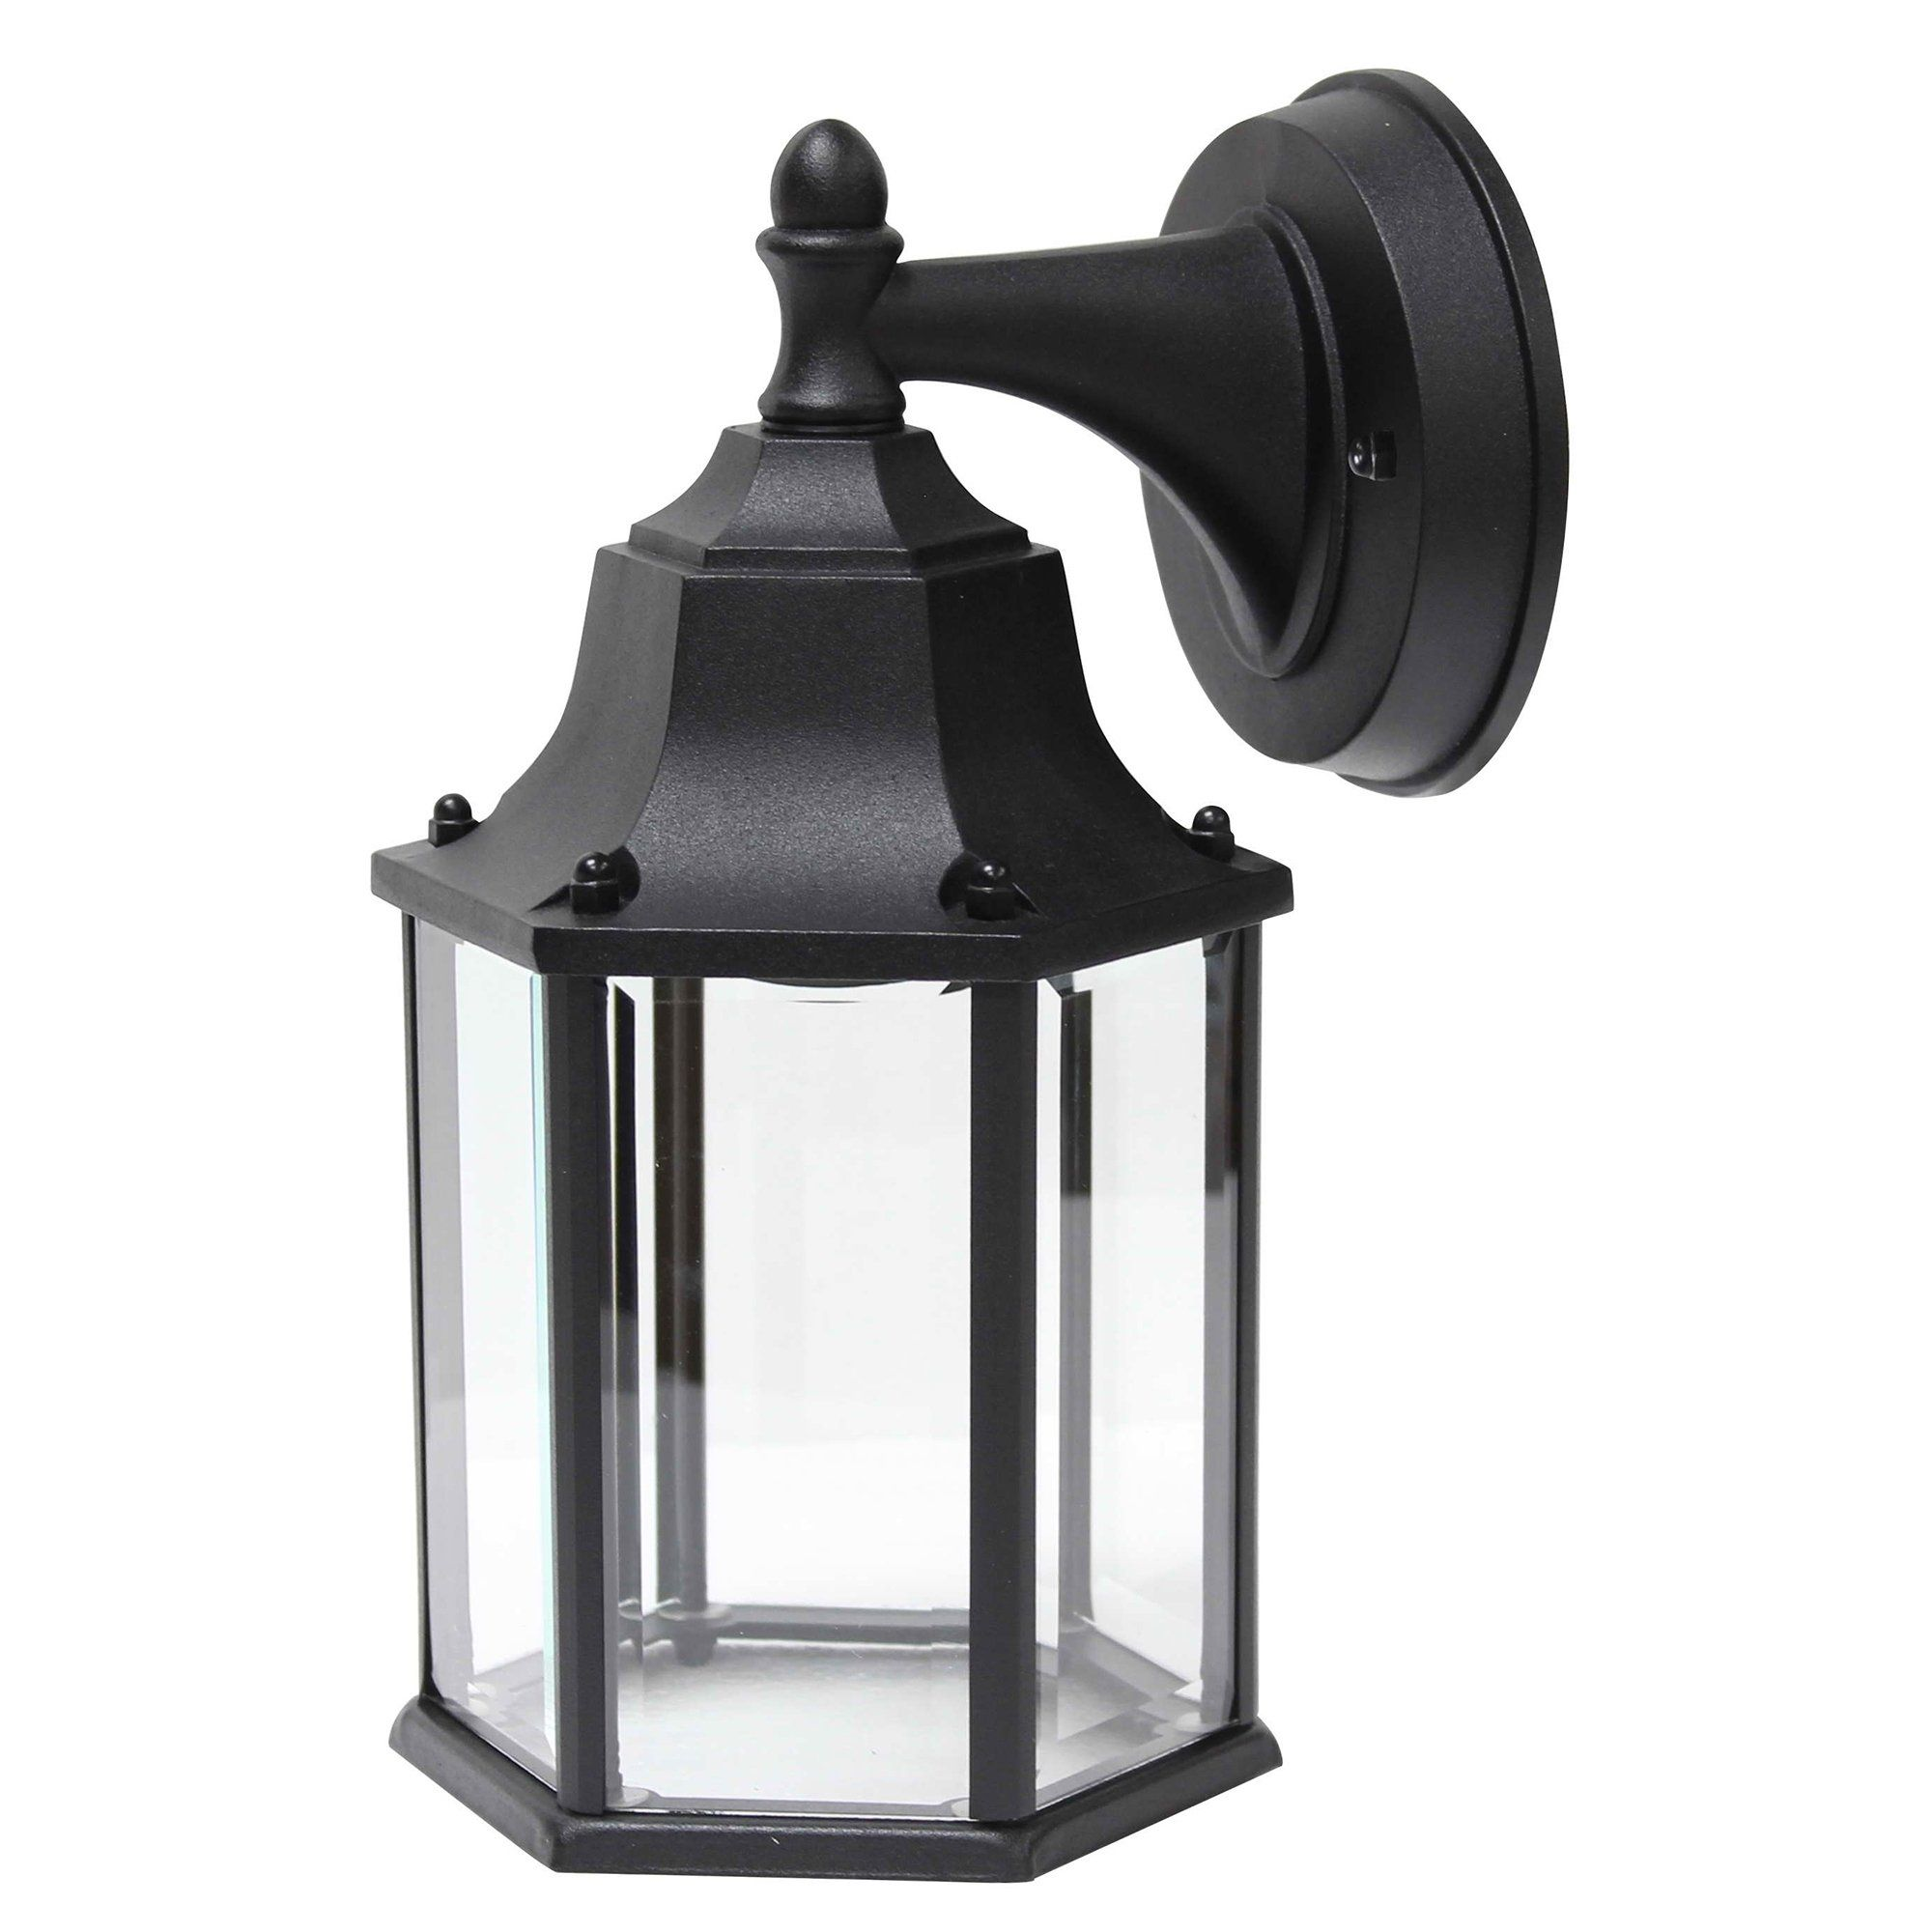 Exterior Led Light Fixtures Led Light Outdoor Wall Lighting In Black Y Decor Glass Products